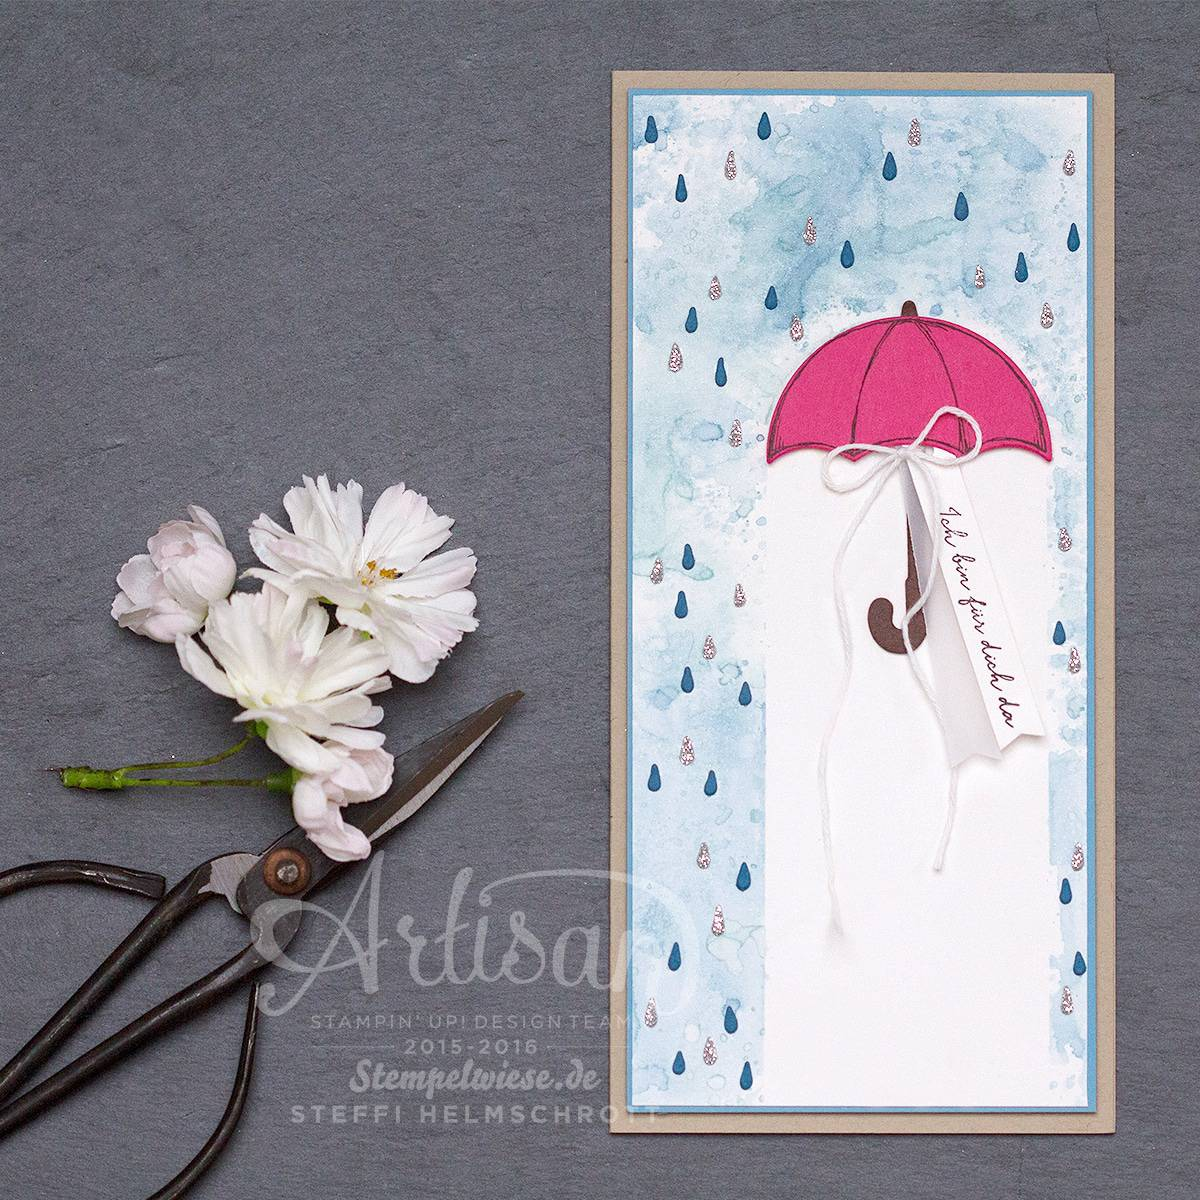 Stampin' Up! - Global Design Project - Donnerwetter - Framelits Regentage - Ich bin immer fuer dich da - Stempelwiese